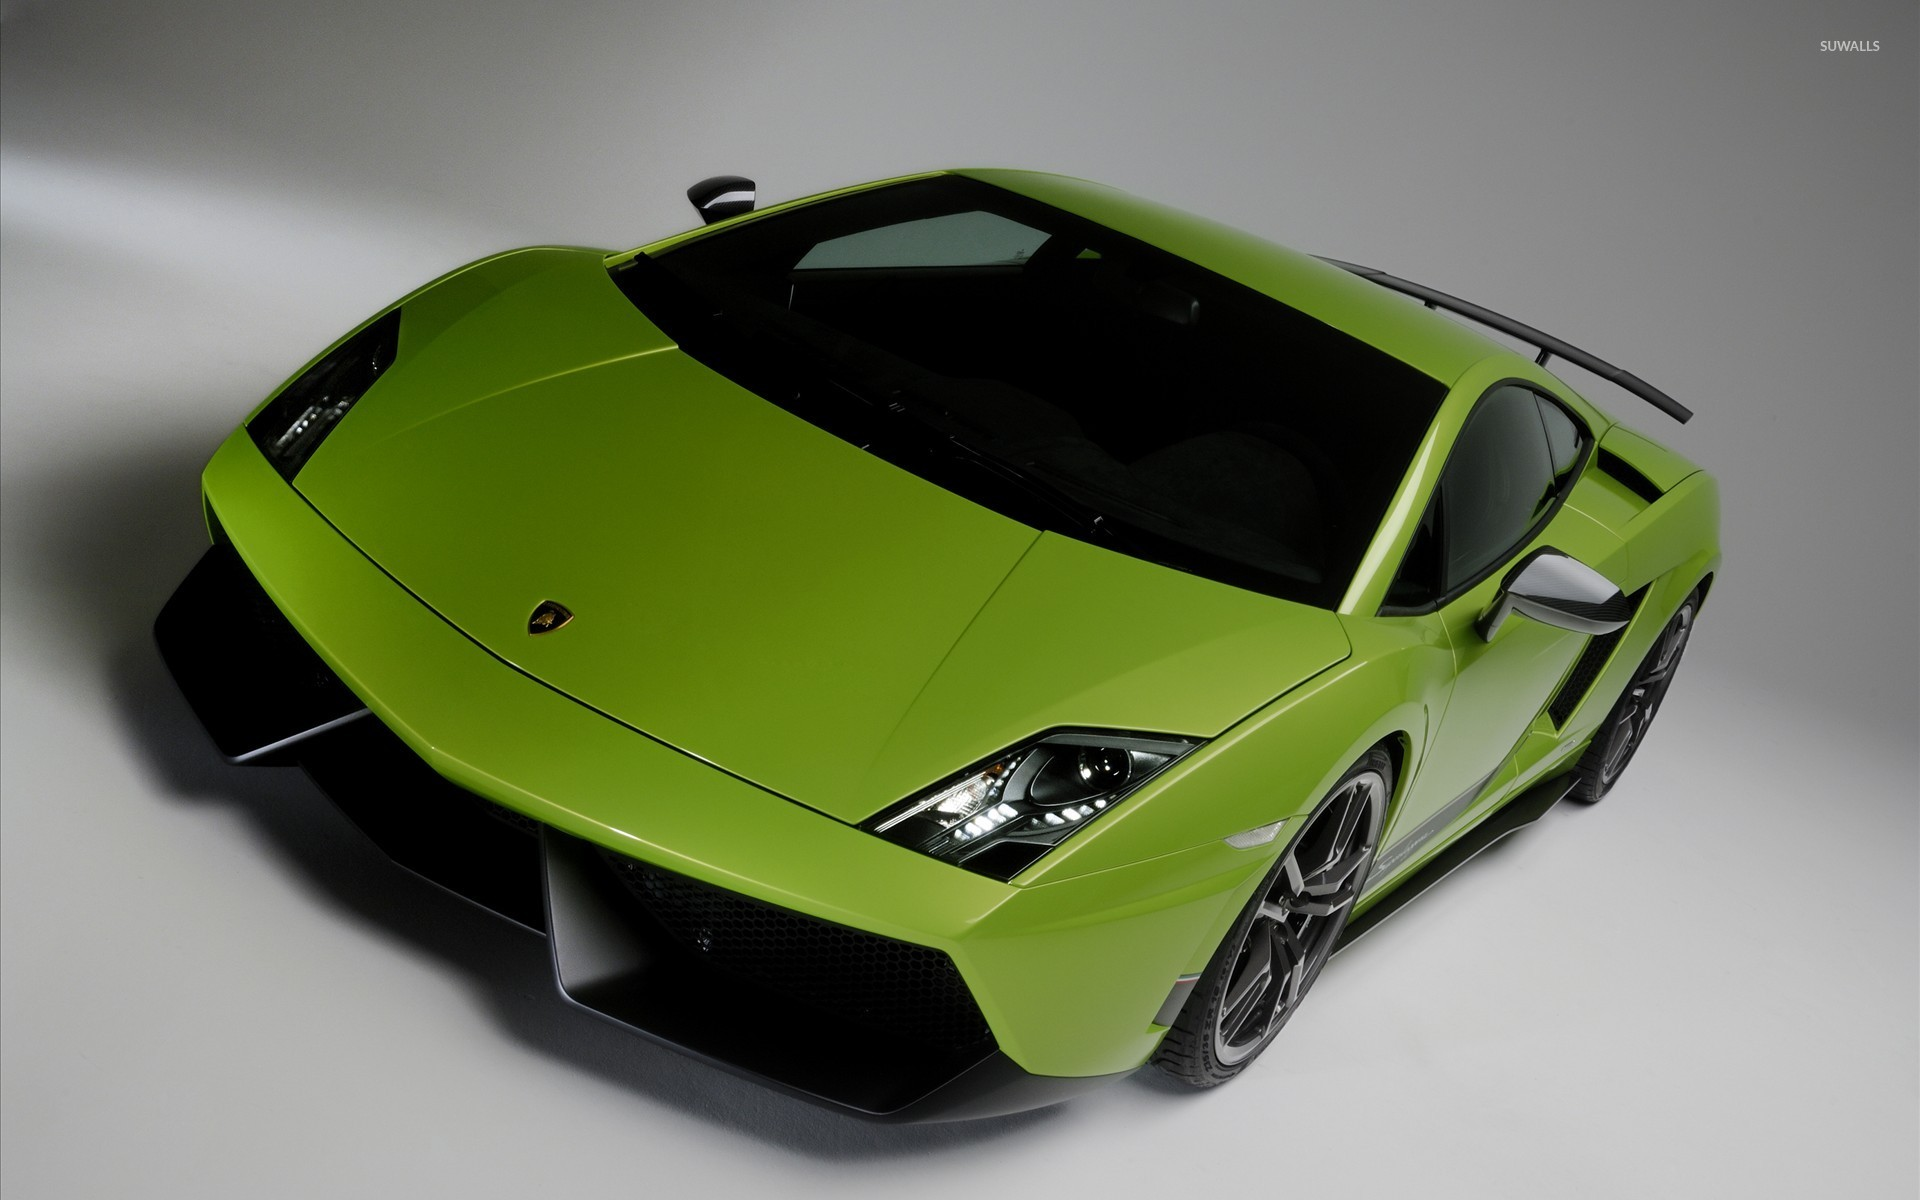 lamborghini gallardo lp560 4 superleggera wallpaper 1920x1200 jpg